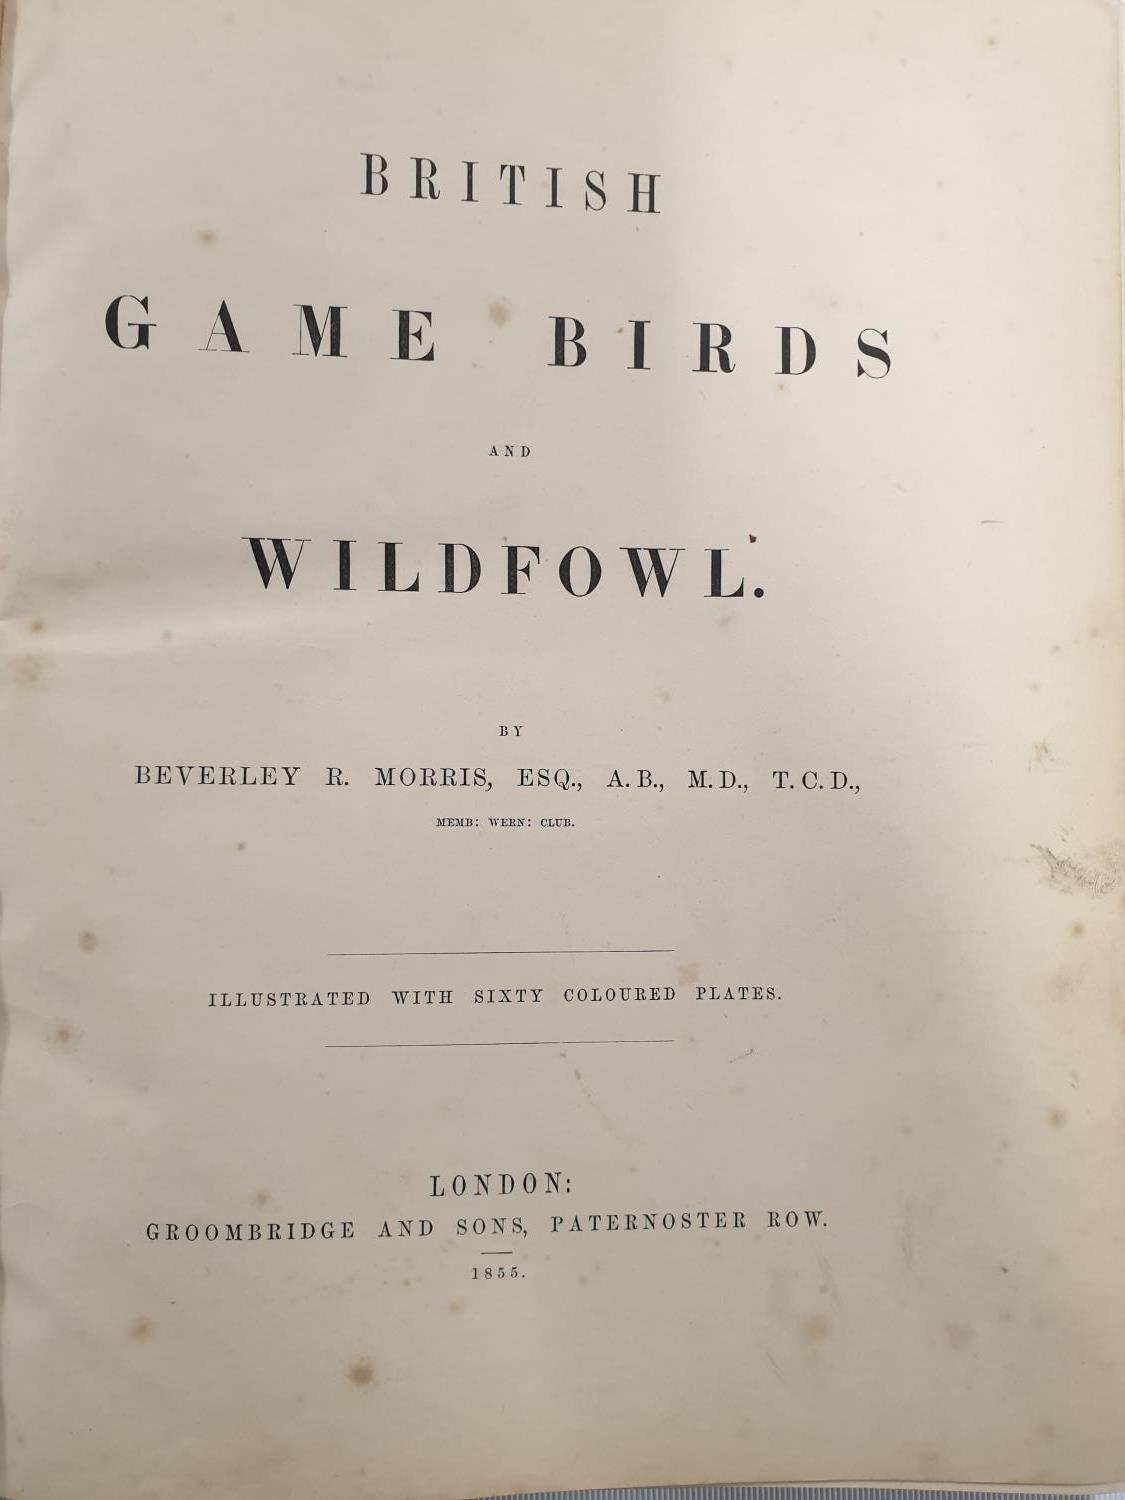 Lot 412 - British Game Birds and Wildfowl by Beverly R Morris illustrated with sixty coloured Plates 1855